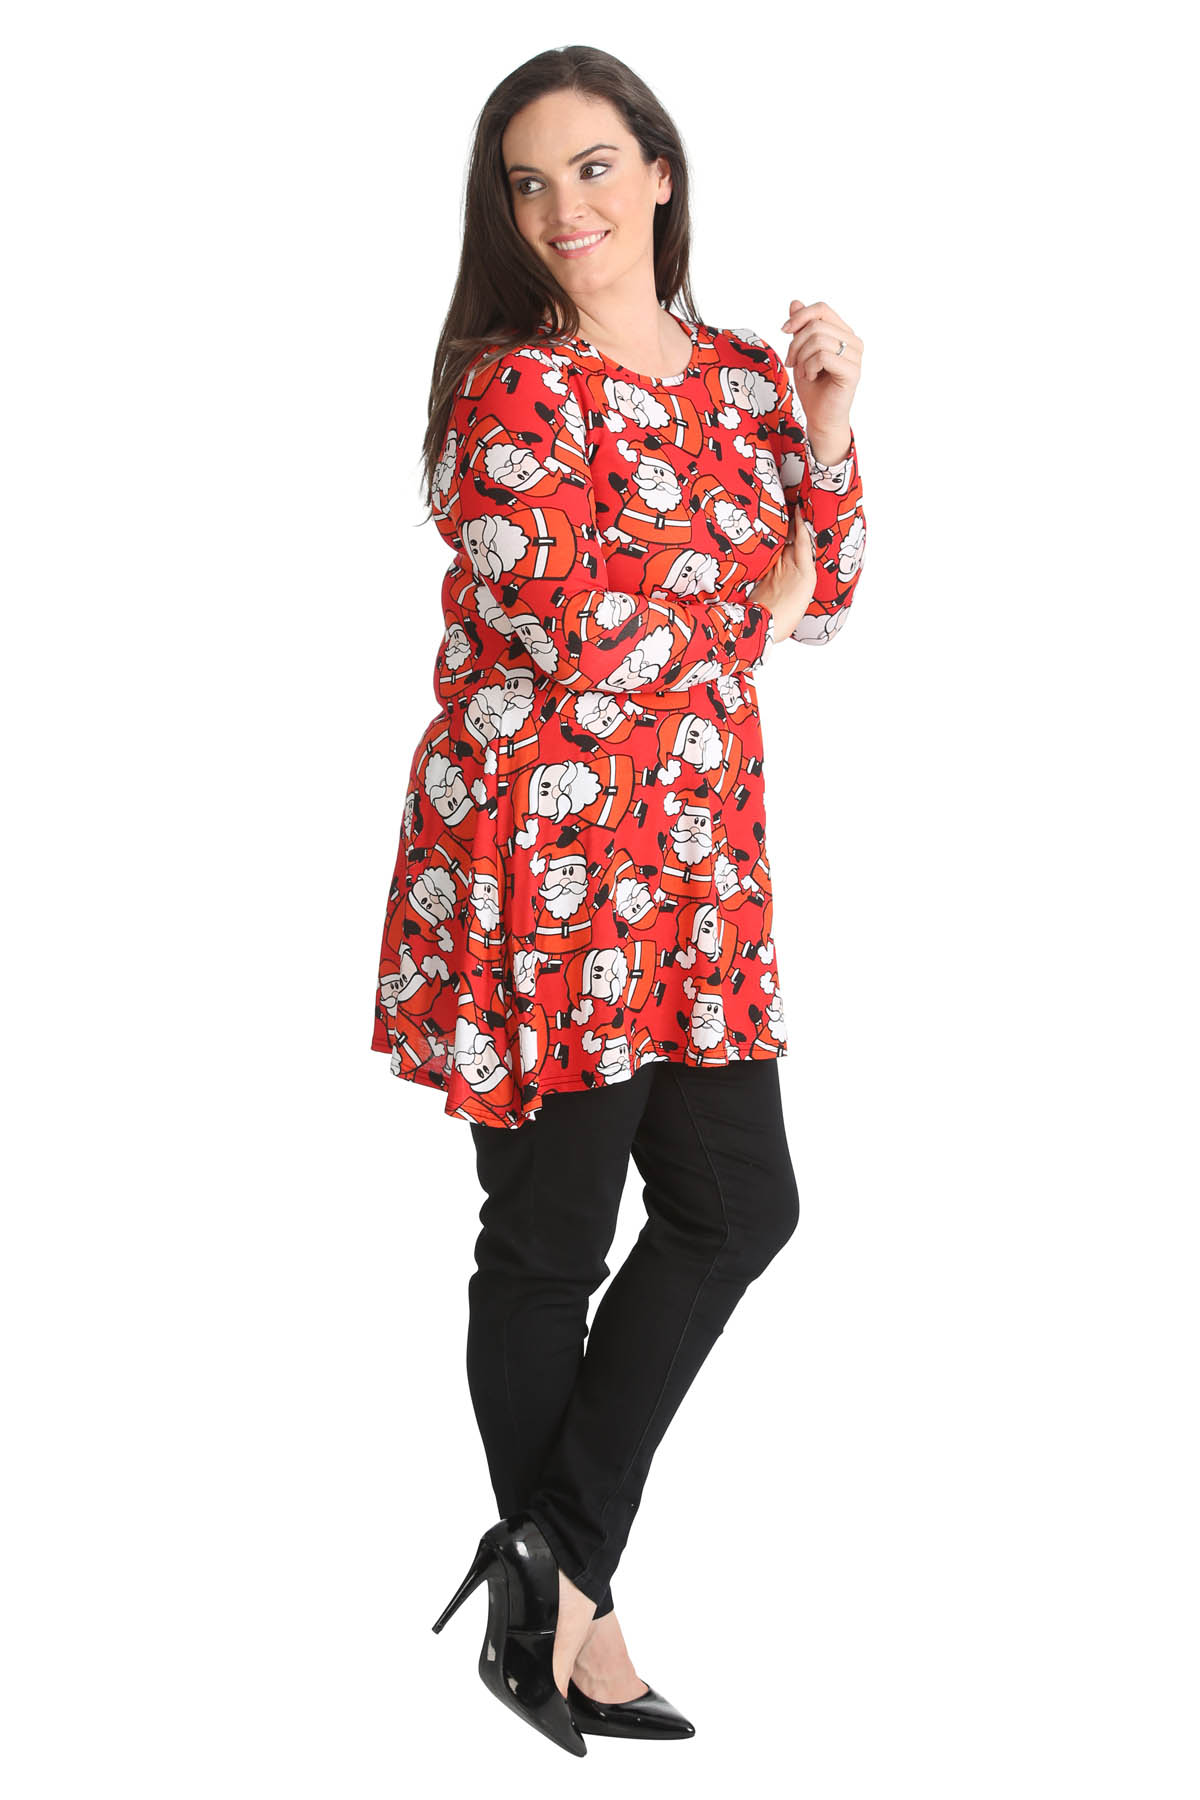 Find great deals on eBay for ladies holiday tops. Shop with confidence.